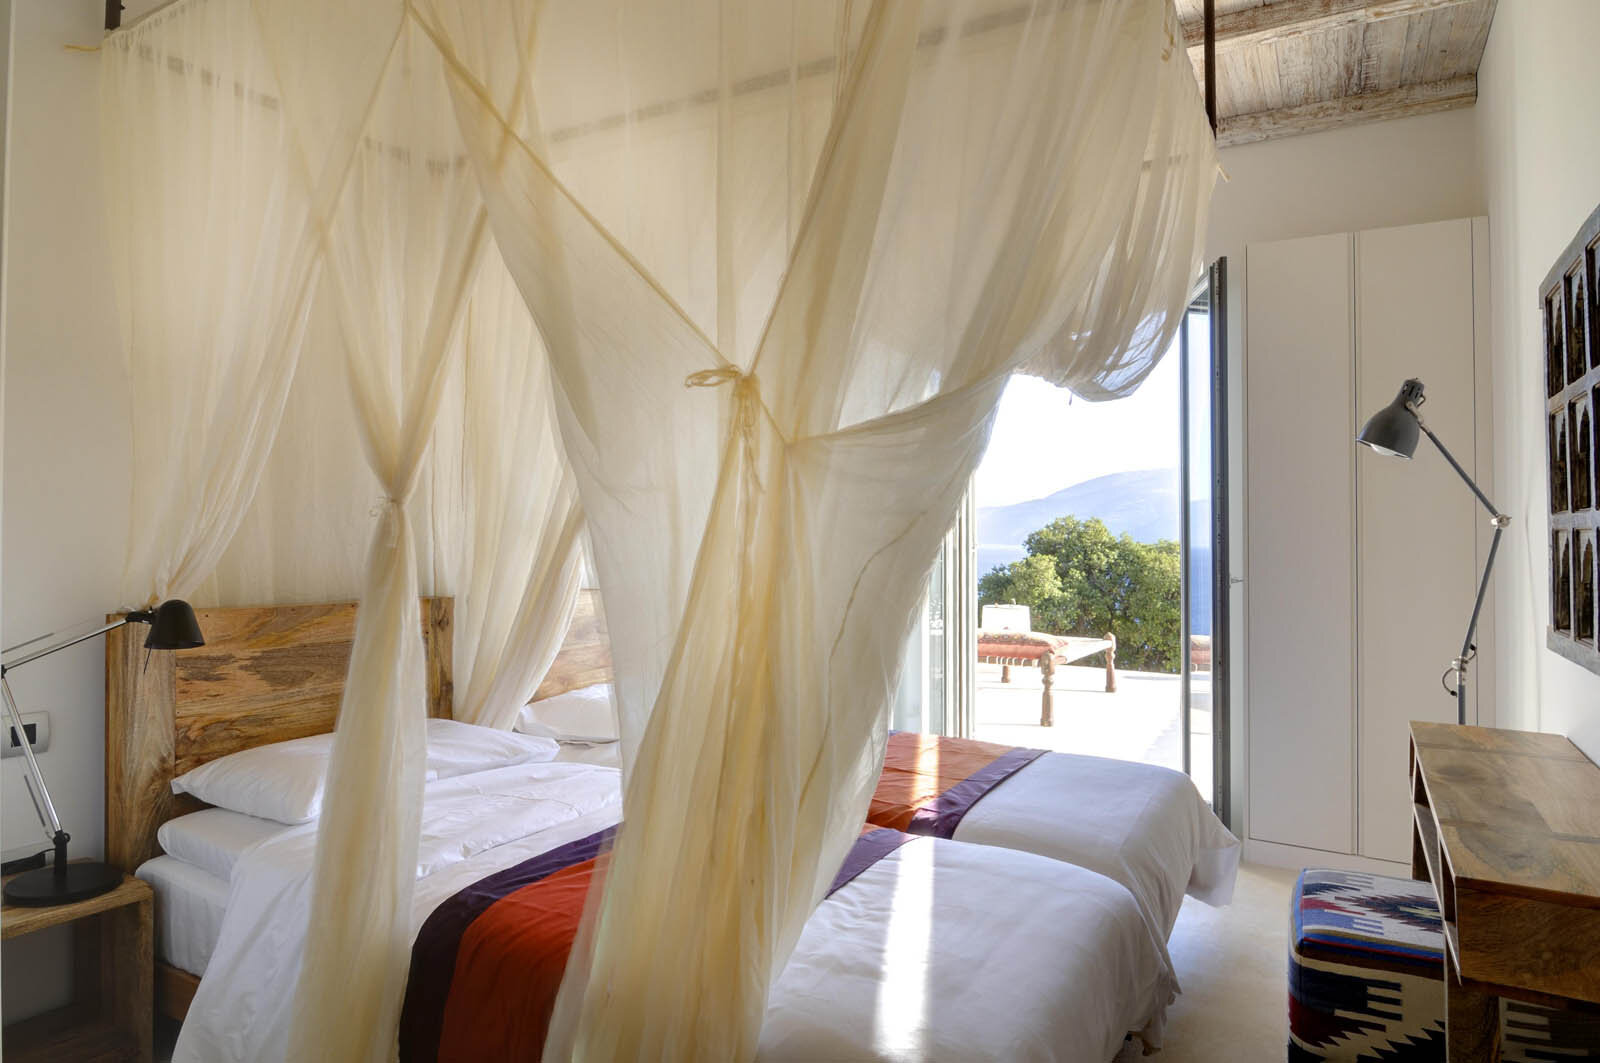 Mango - Shared Twin - $3050 (per person - you'll be paired with another sister in our group)Twin bedroom at the end of the first floor corridor. Includes ensuite bathroom, air conditioning, a balcony with sunbed, and views of the Ionian sea and the hills of Kefalonia.